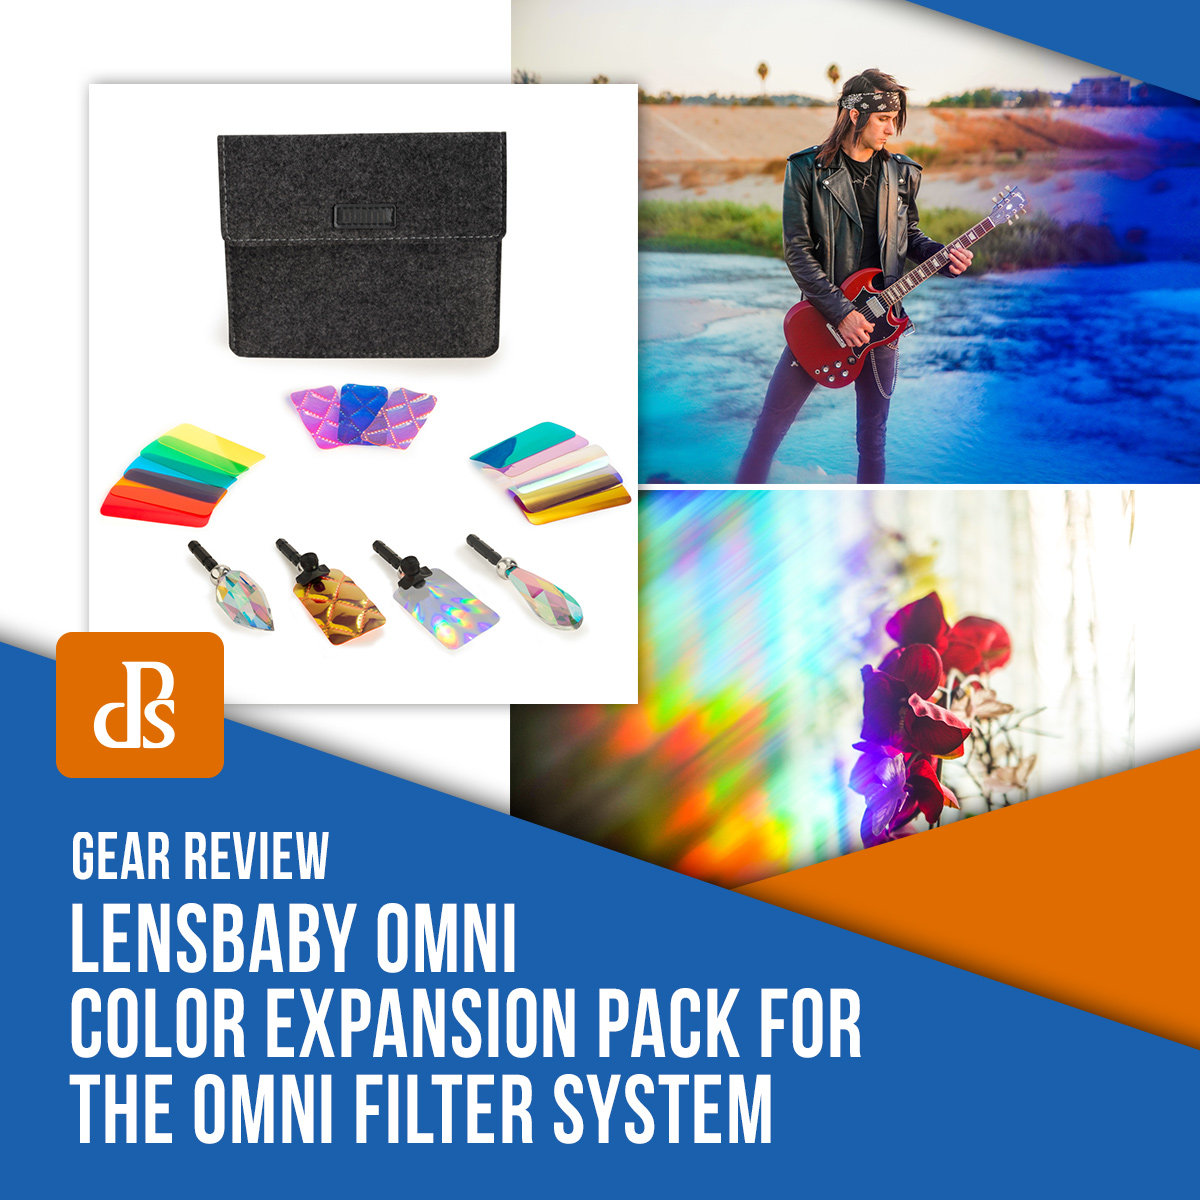 lensbaby-omni-expansion-pack